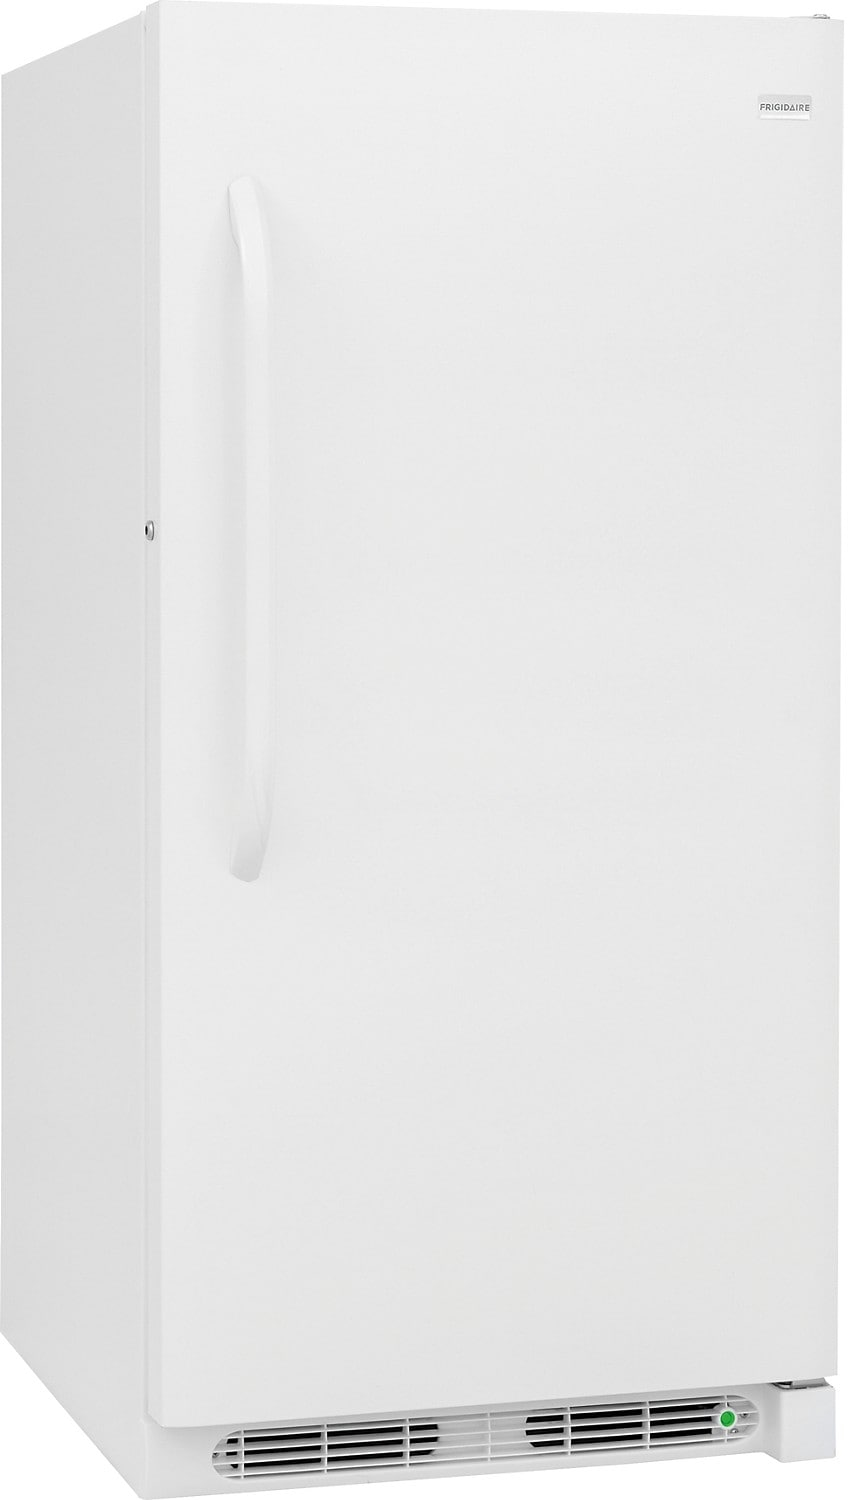 Refrigerators and Freezers - Frigidaire 14.4 Cu. Ft. Upright Freezer - White